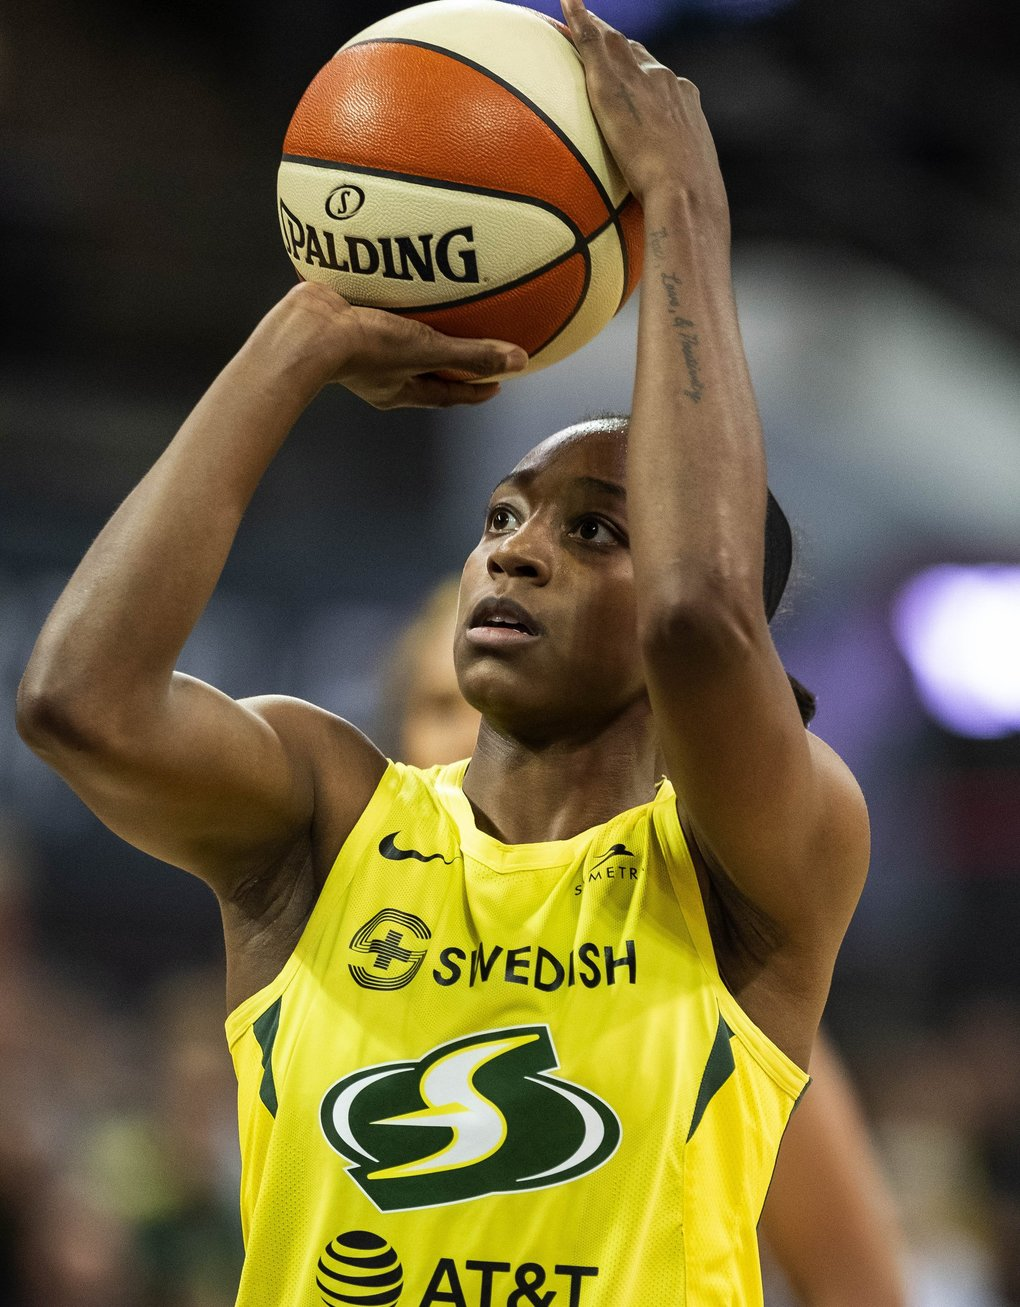 Jewell Loyd had 21 points in the winning effort for Seattle.  The Indiana Fever played the Seattle Storm in WNBA action Sunday, June 23, 2019 at Alaska Airlines Arena in Seattle, WA. (Dean Rutz / The Seattle Times)